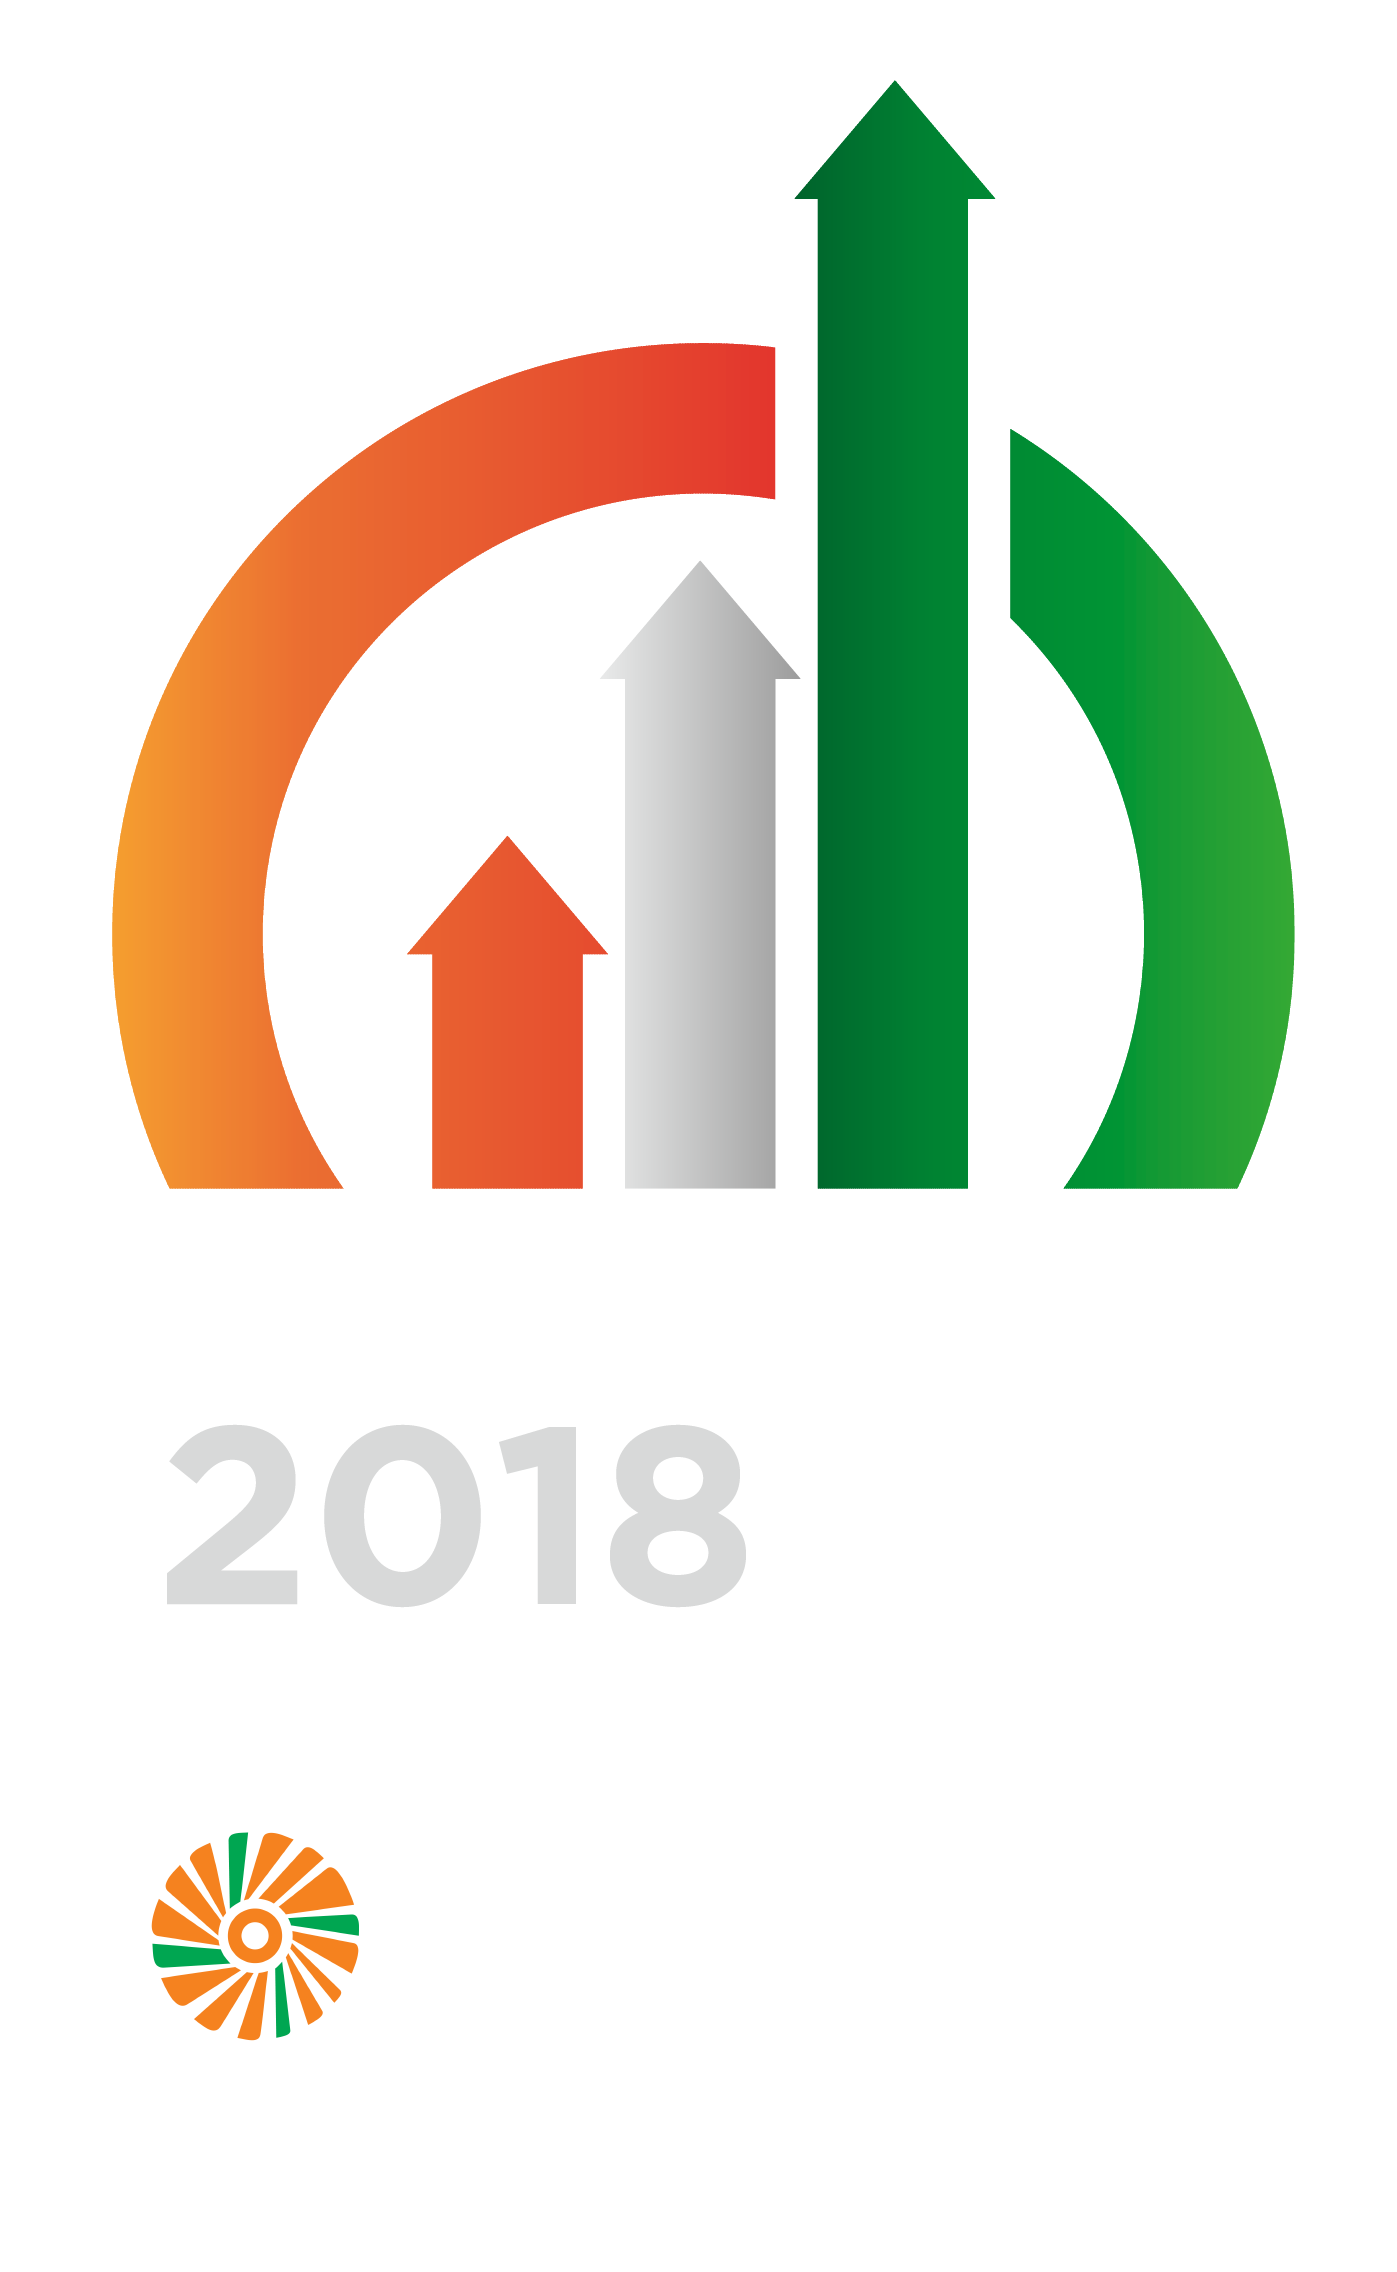 free Budget clipart capital budgeting. Investindia inclusive growth and